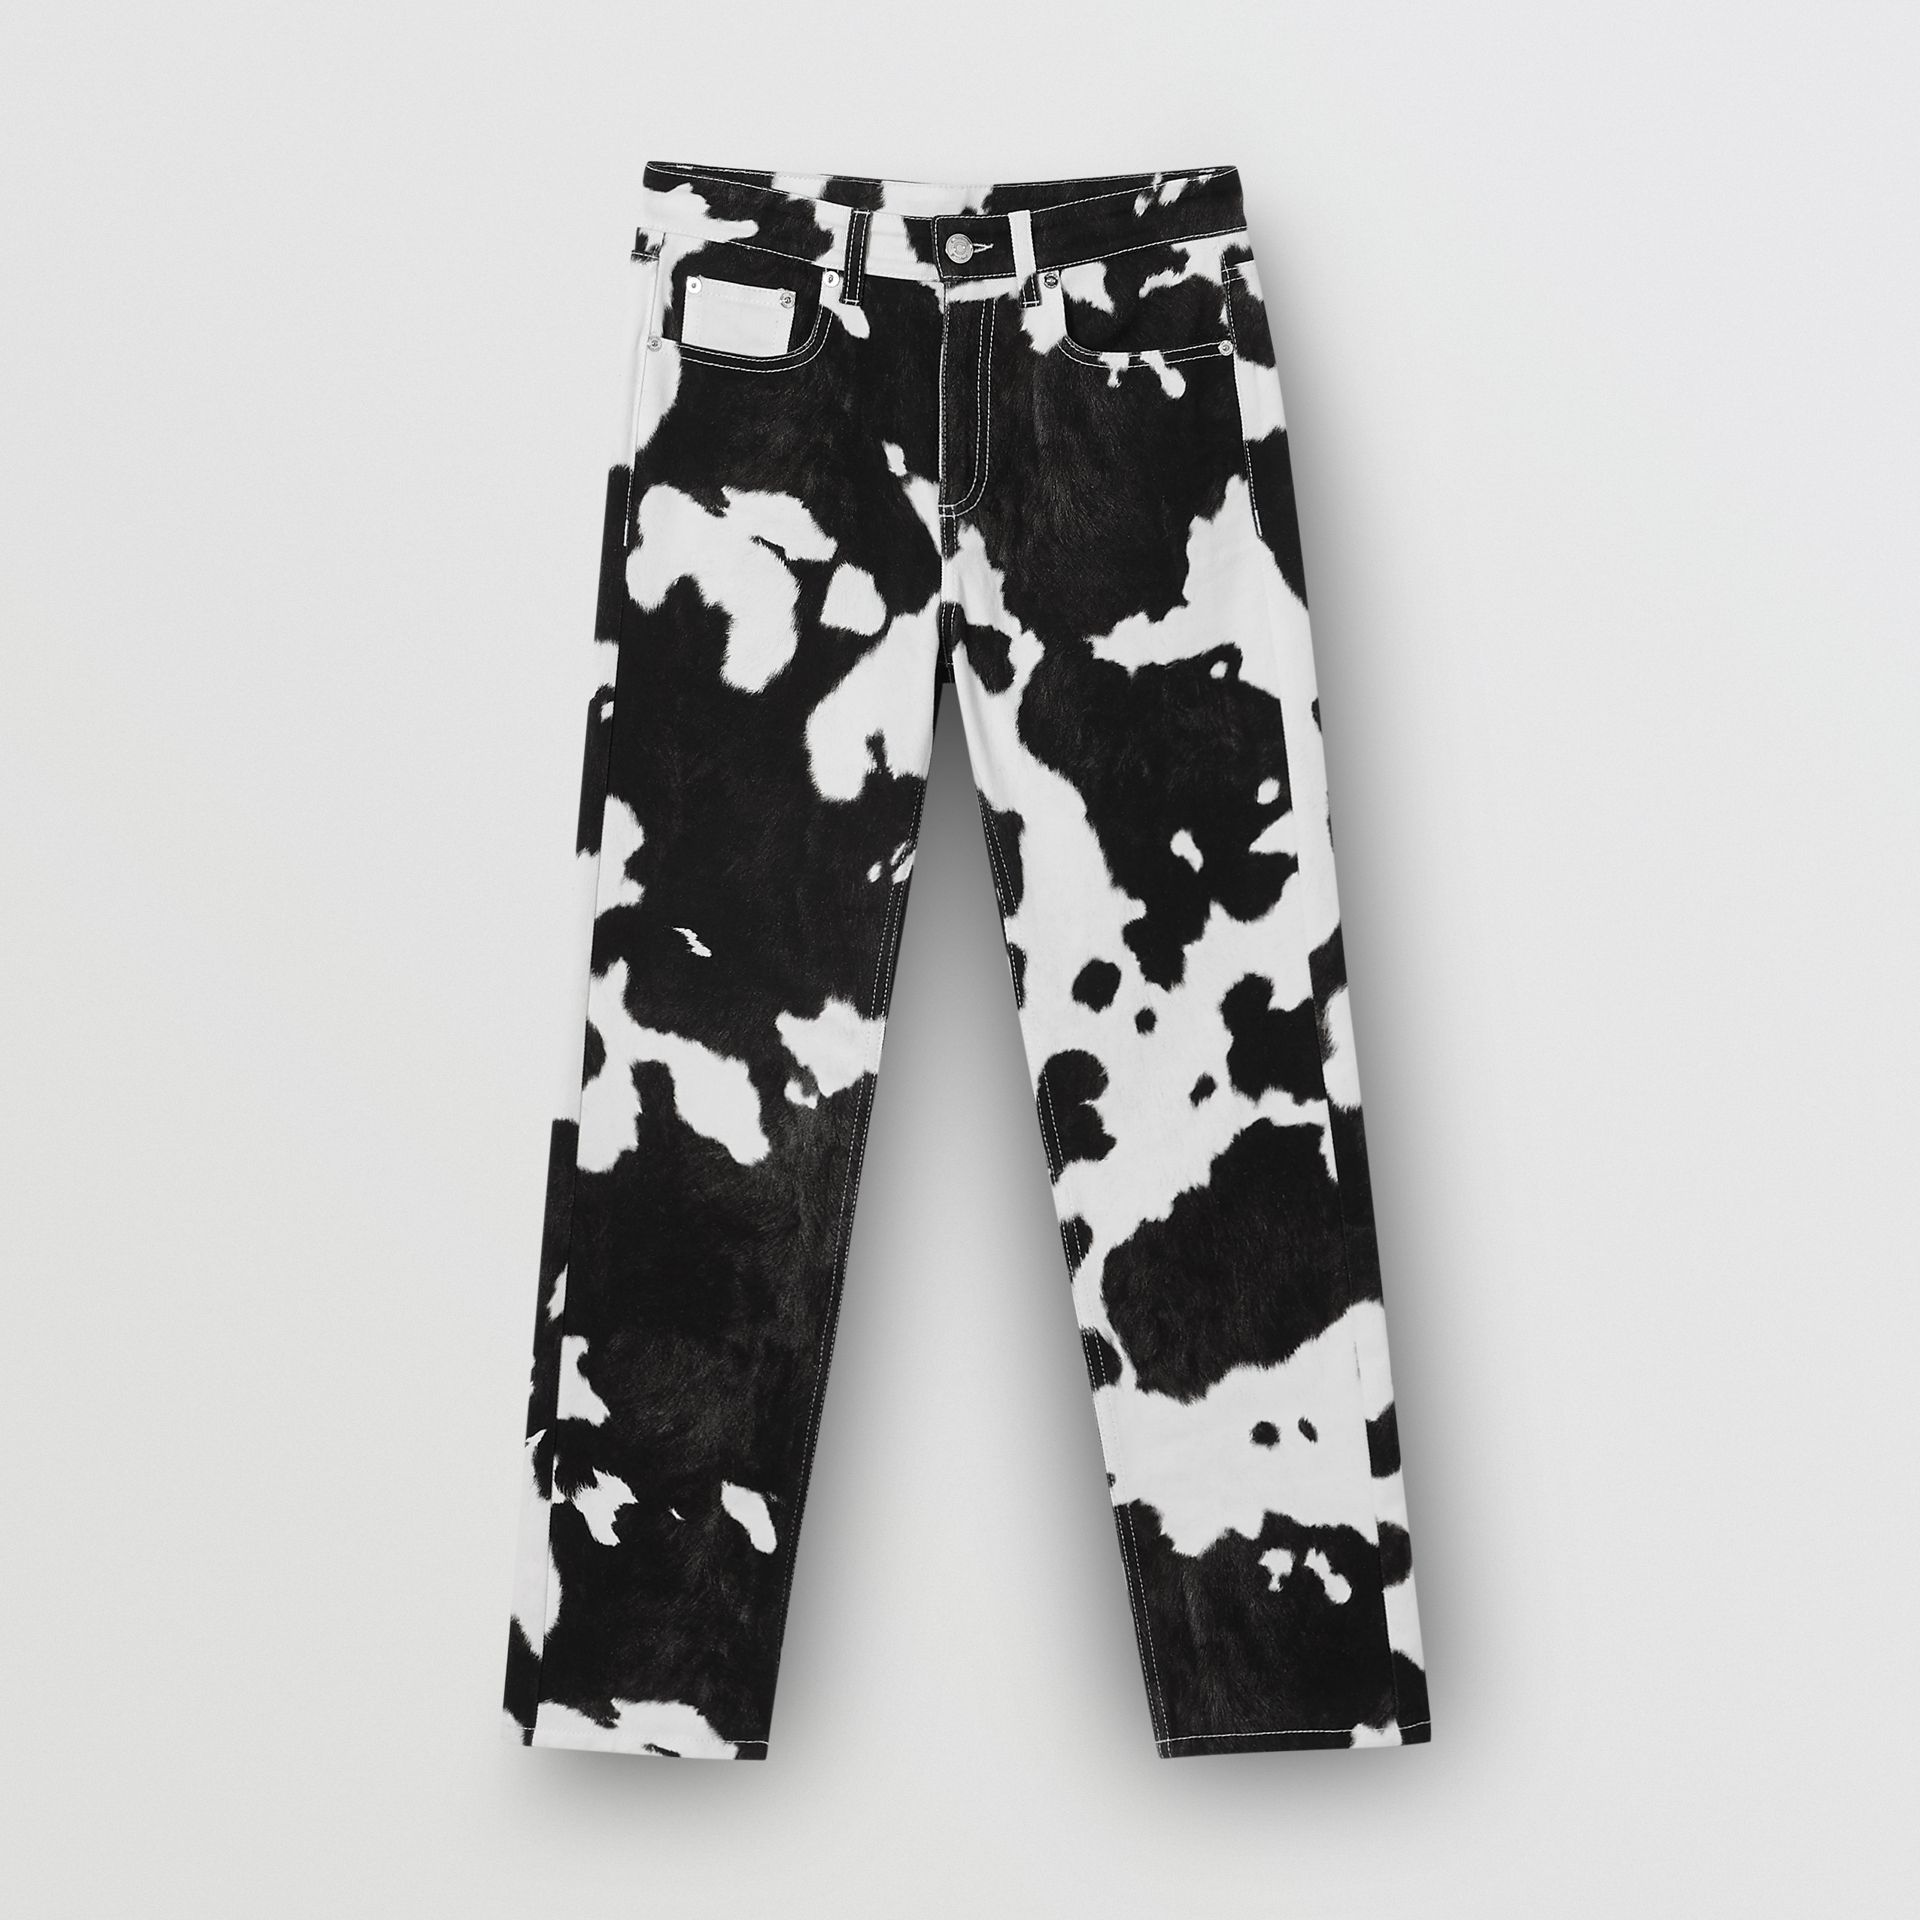 Straight Fit Cow Print Jeans in Black - Women | Burberry - gallery image 3